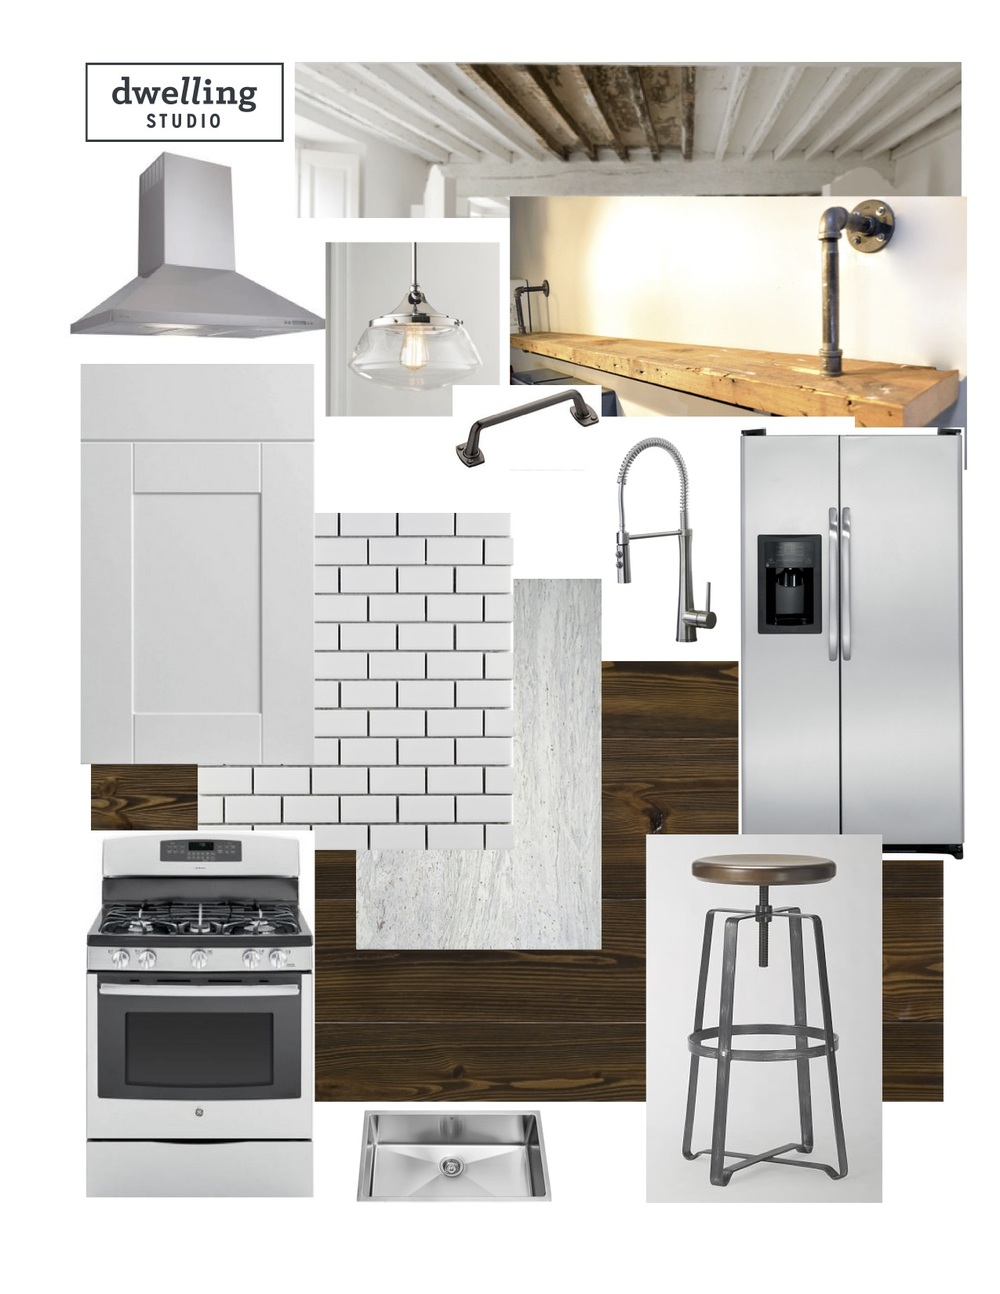 Modern Schoolhouse Kitchen Design Mood Board.jpg